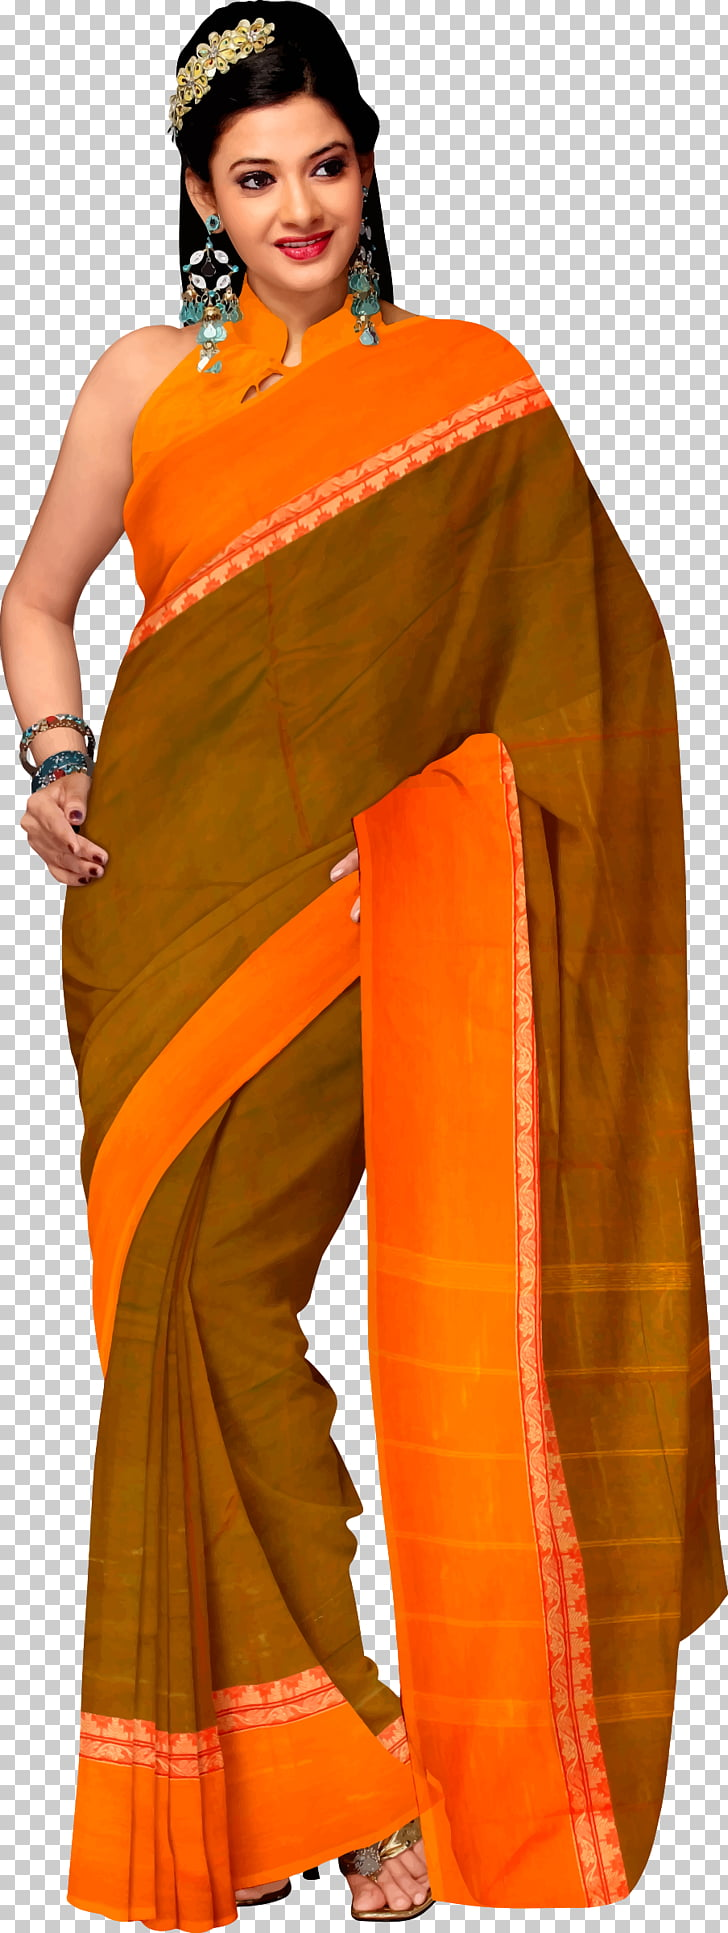 Sari Clothing Paithani Woman, woman PNG clipart.